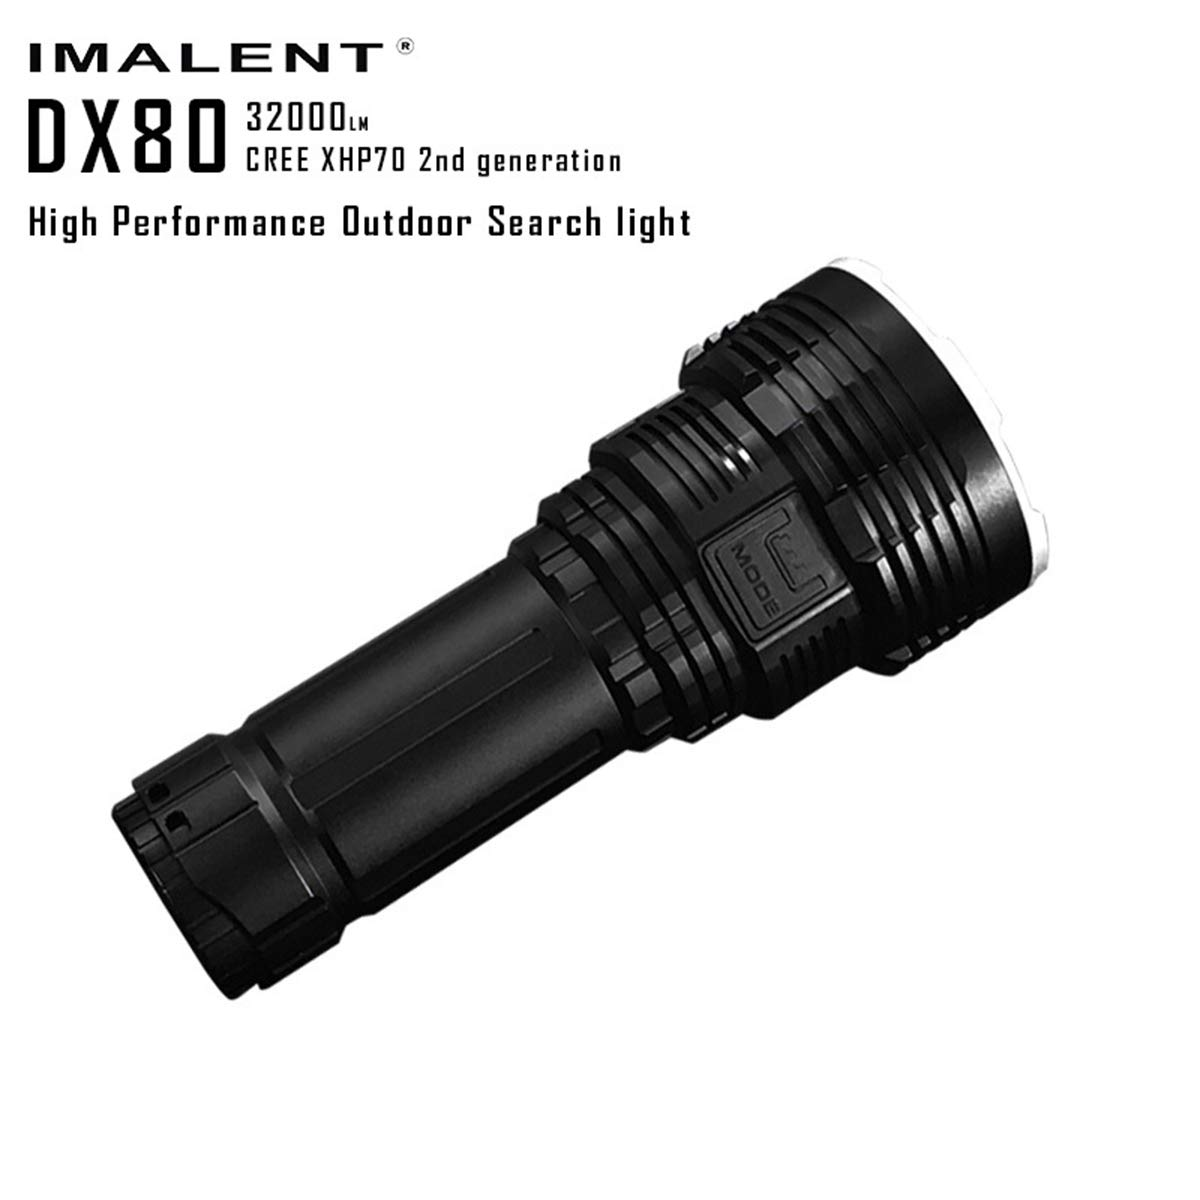 JUN GUANG Super Bright IMALENT DX80 32000LM LED Outdoor Searchlight Torch 806 Meter, Suche und Rettung LED-Flashlights Built-in Batterie